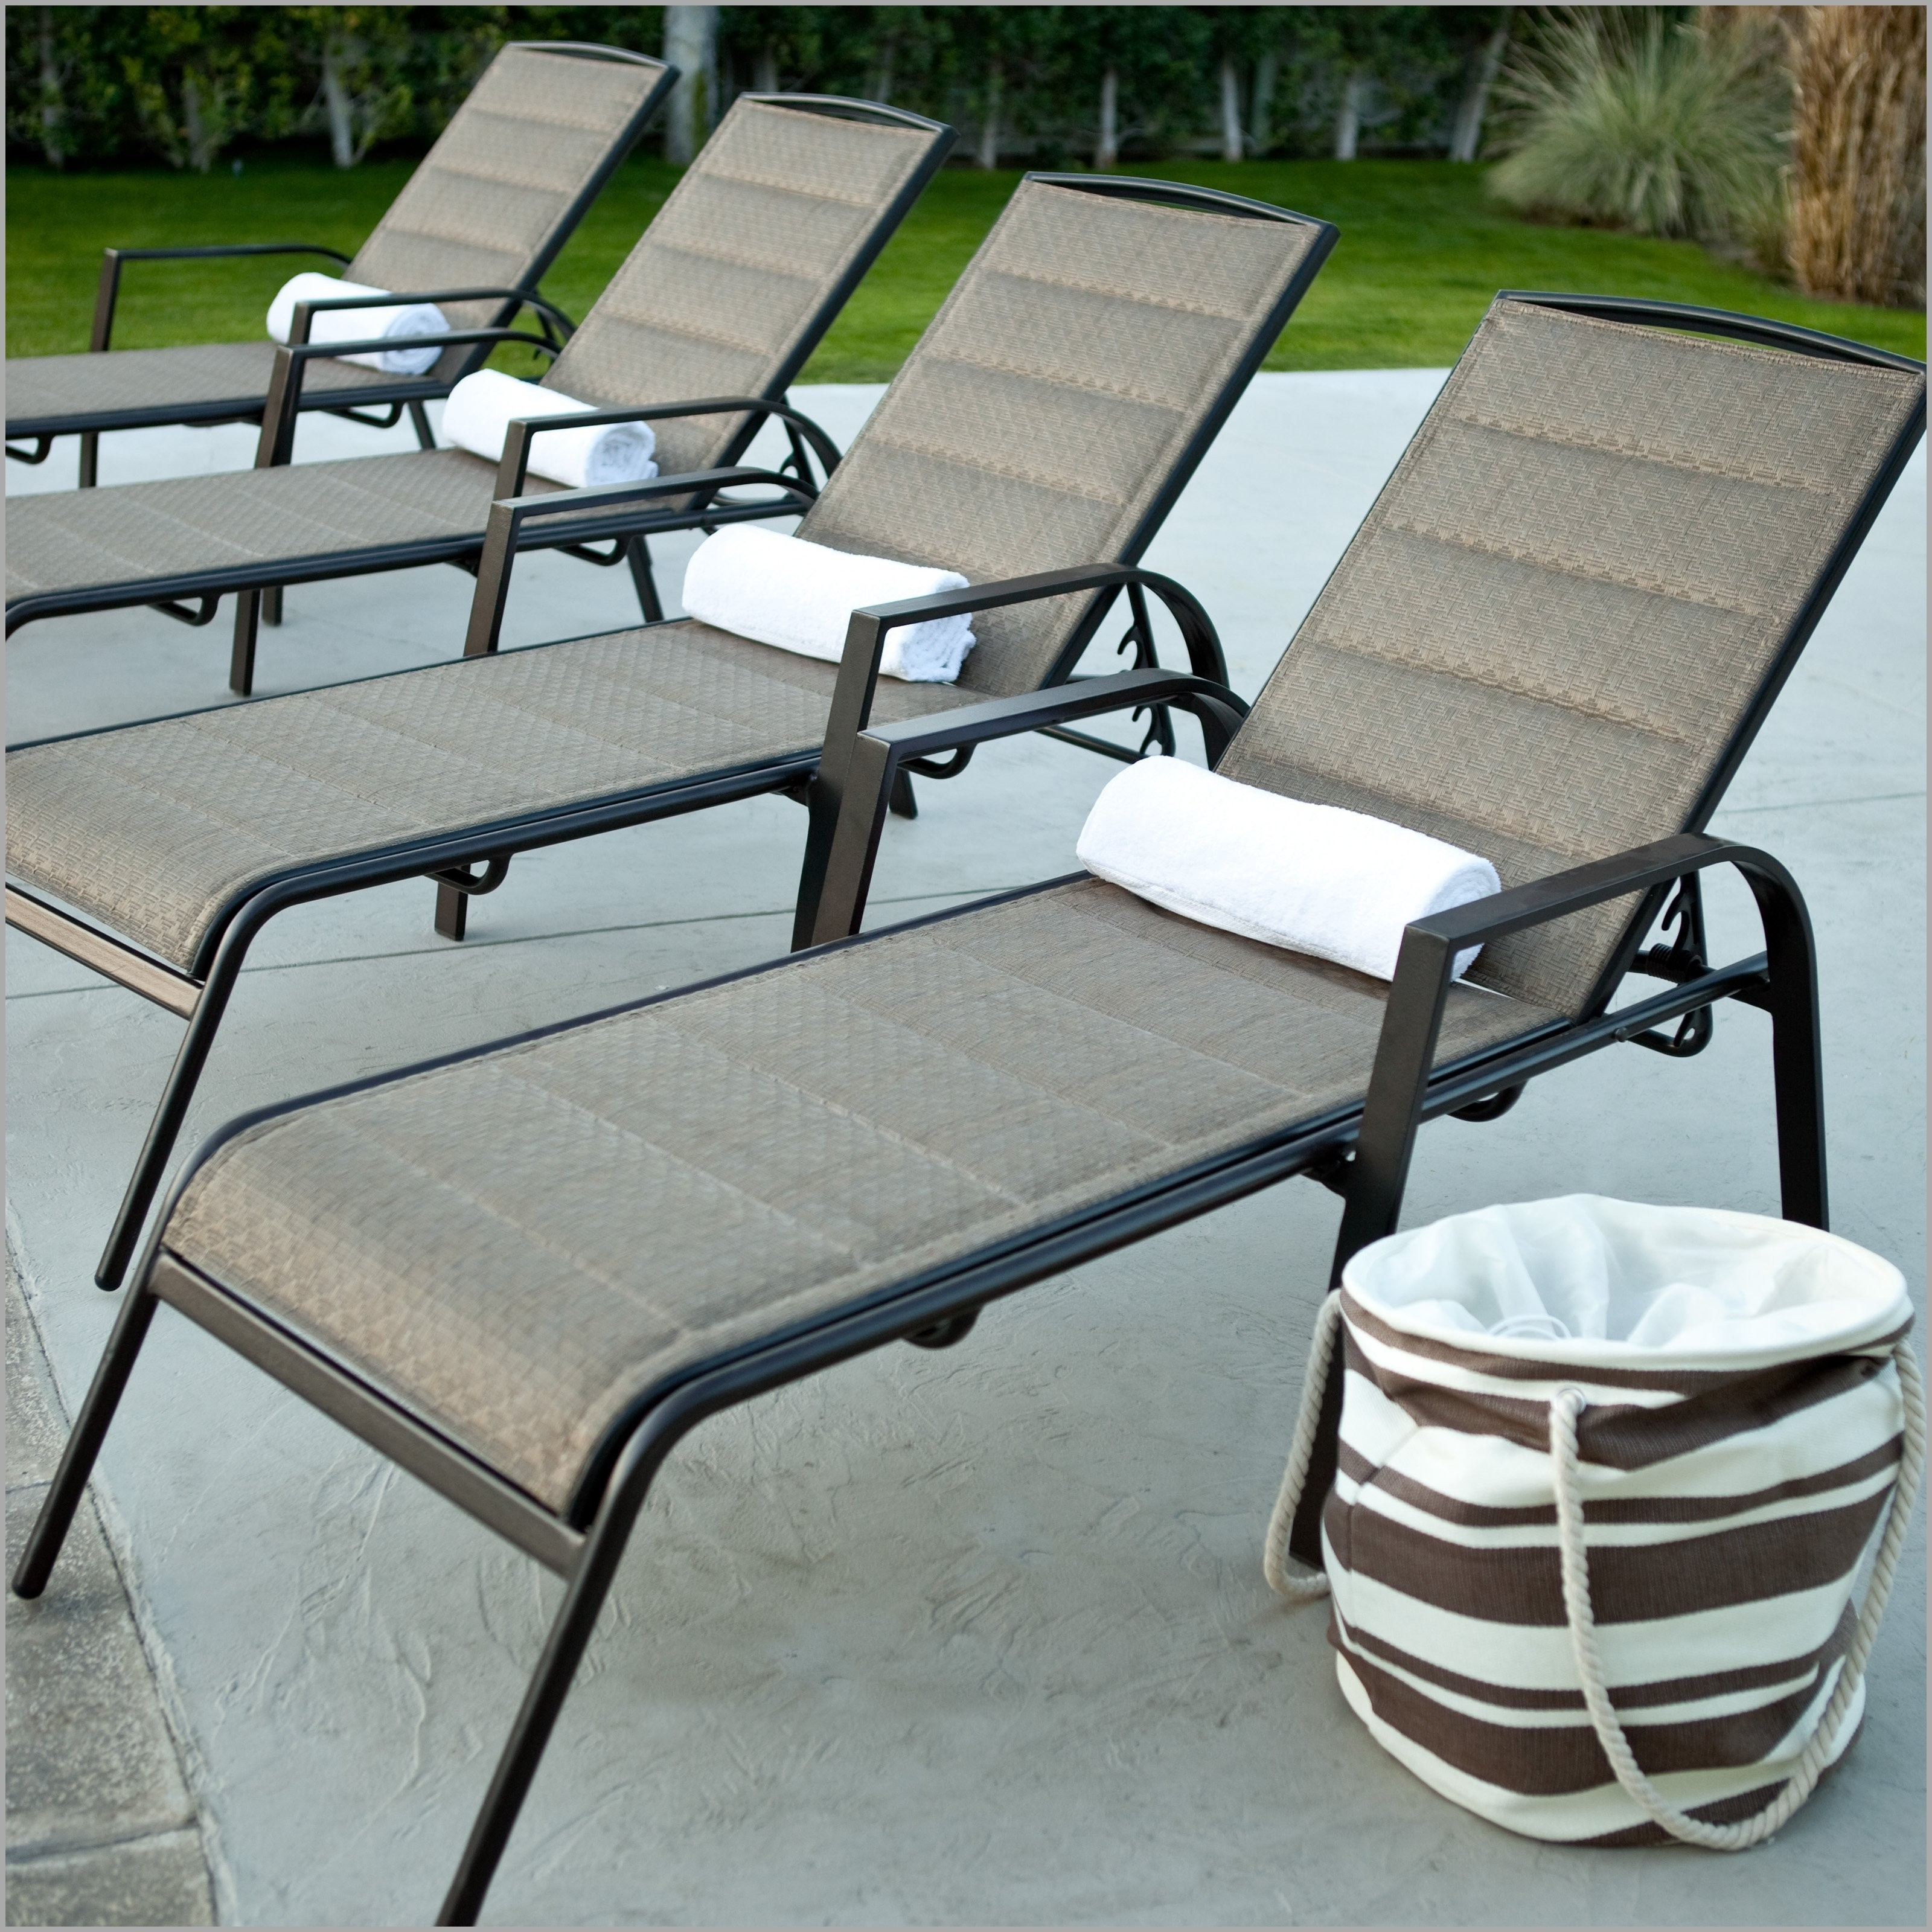 Extraordinary Pool Chaise Lounge Chairs Decorative 600357 – Chair With Favorite Chaise Lounge Chairs For Poolside (View 5 of 15)